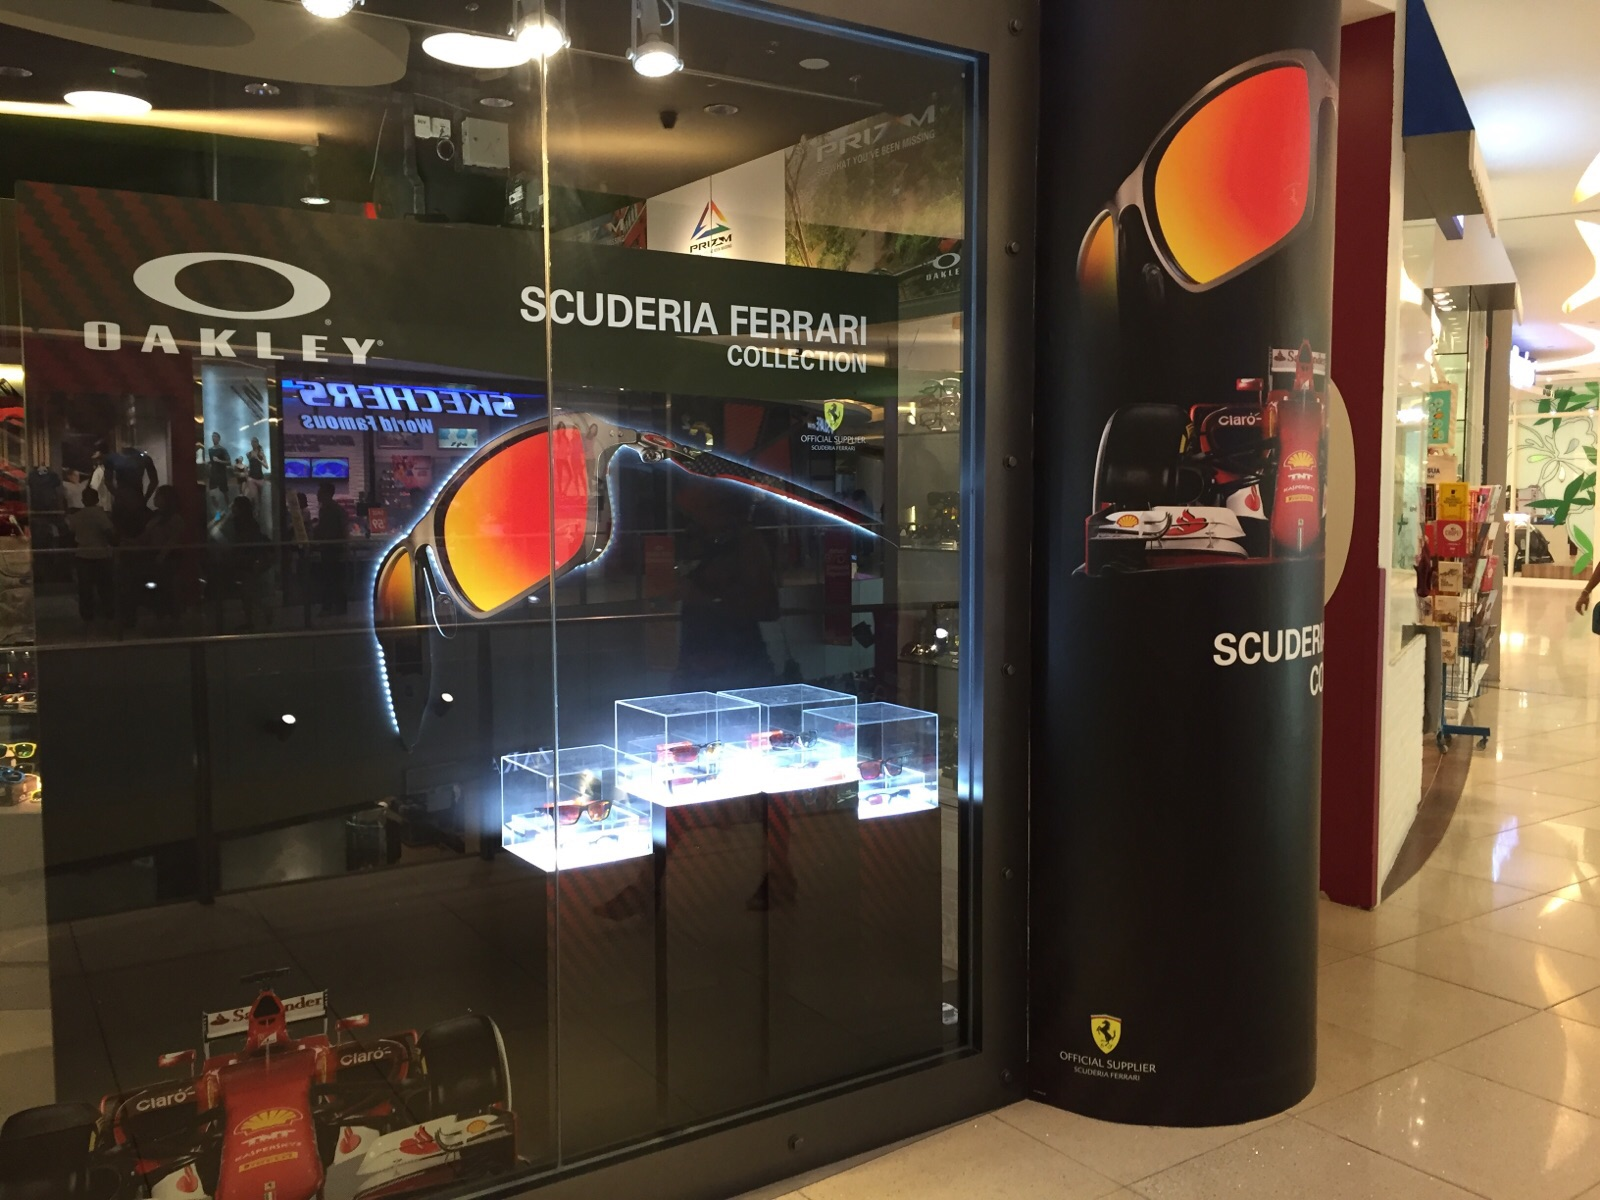 <p>A small window display for Oakley / Ferrari Scuderia collection. Just in time for the F1 racing season here in Singapore.</p>